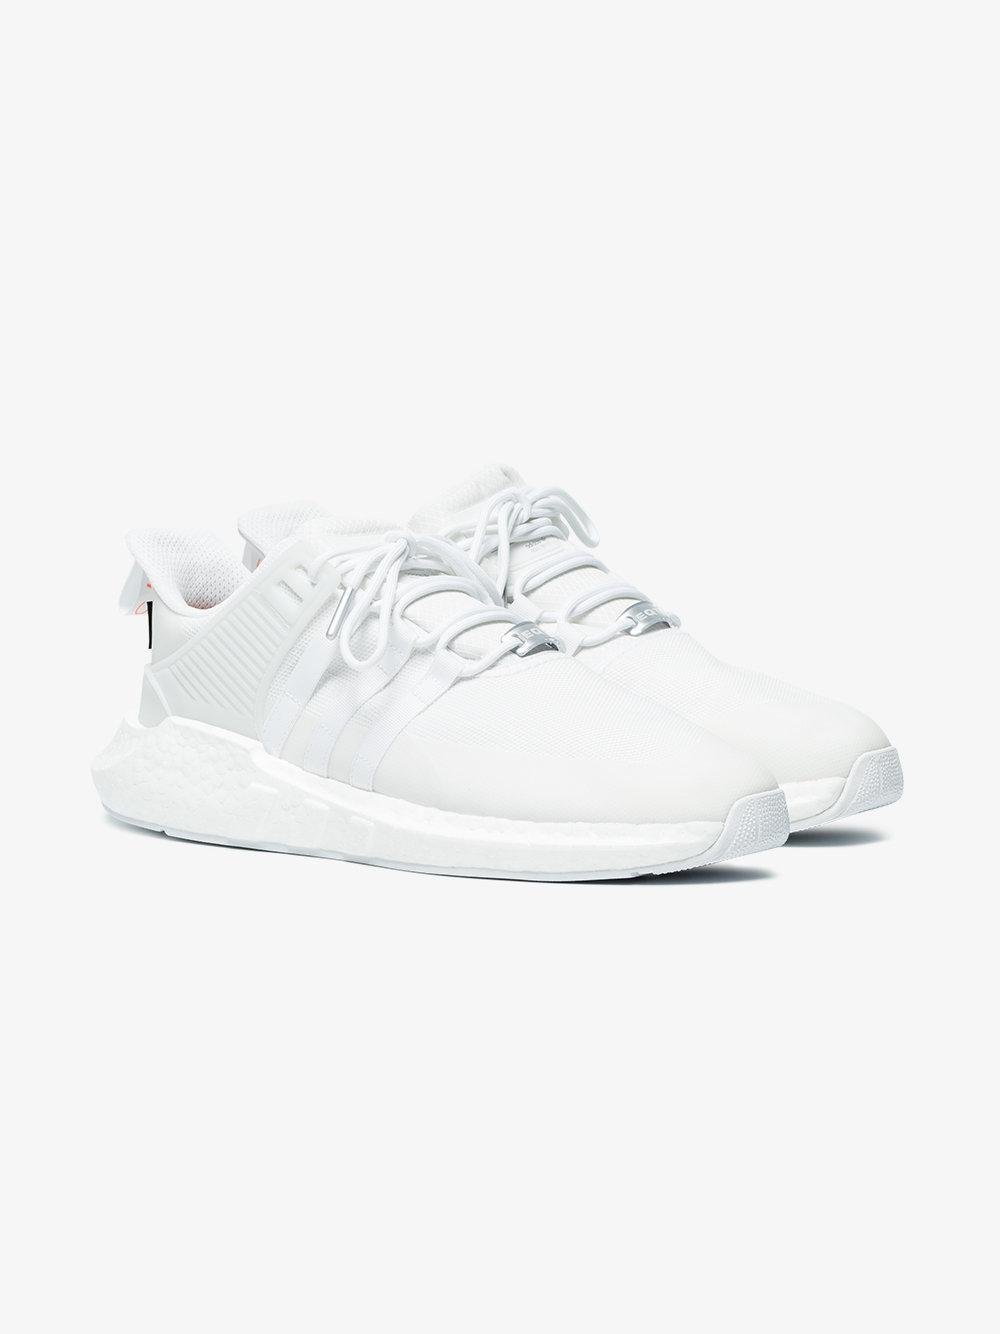 8bc59b9fc3d2 Lyst - adidas Eqt Support Gore-tex Sneakers in White for Men